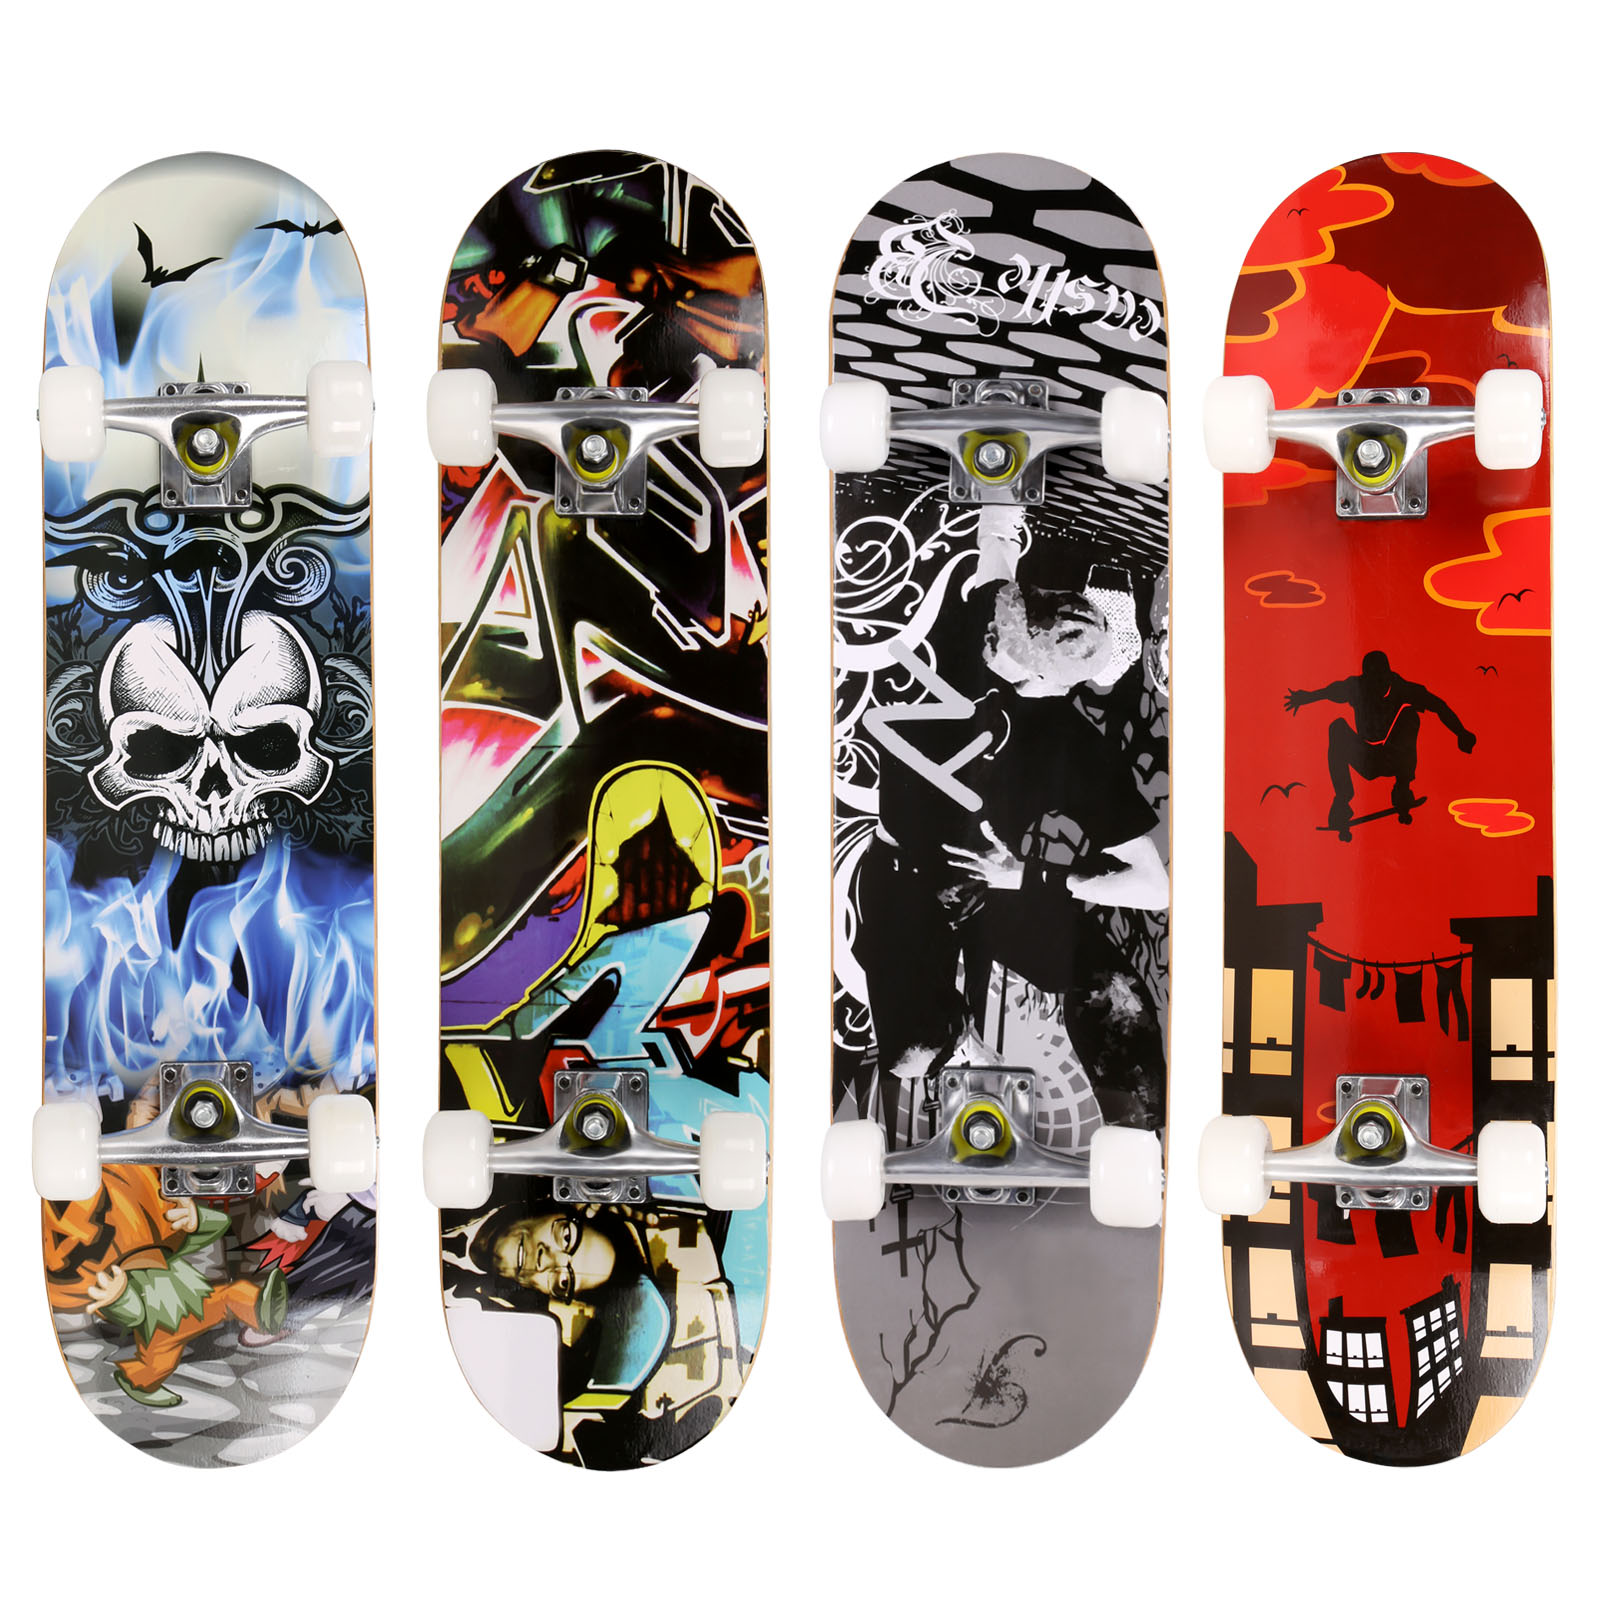 Brand PRO Skull Pattern Longboard Skateboard Complete Deck Wood Deck Skate Board Outdoor Extreme Sports Long Board Hoverboard new arrive flash wheel children skateboard kids entertainment flash skate scooter outdoor extreme sports hoverboard